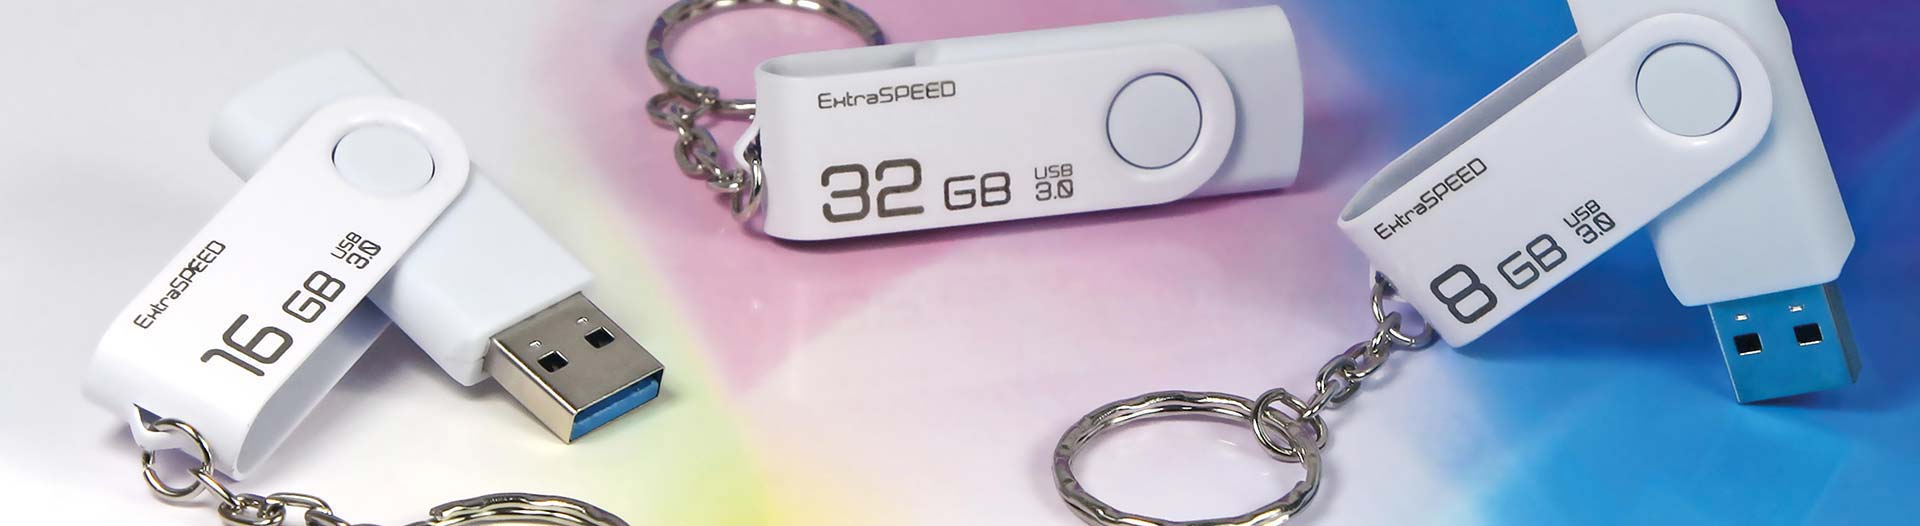 USB-Stick Extra Speed 32GB highspeed 3.0 logo